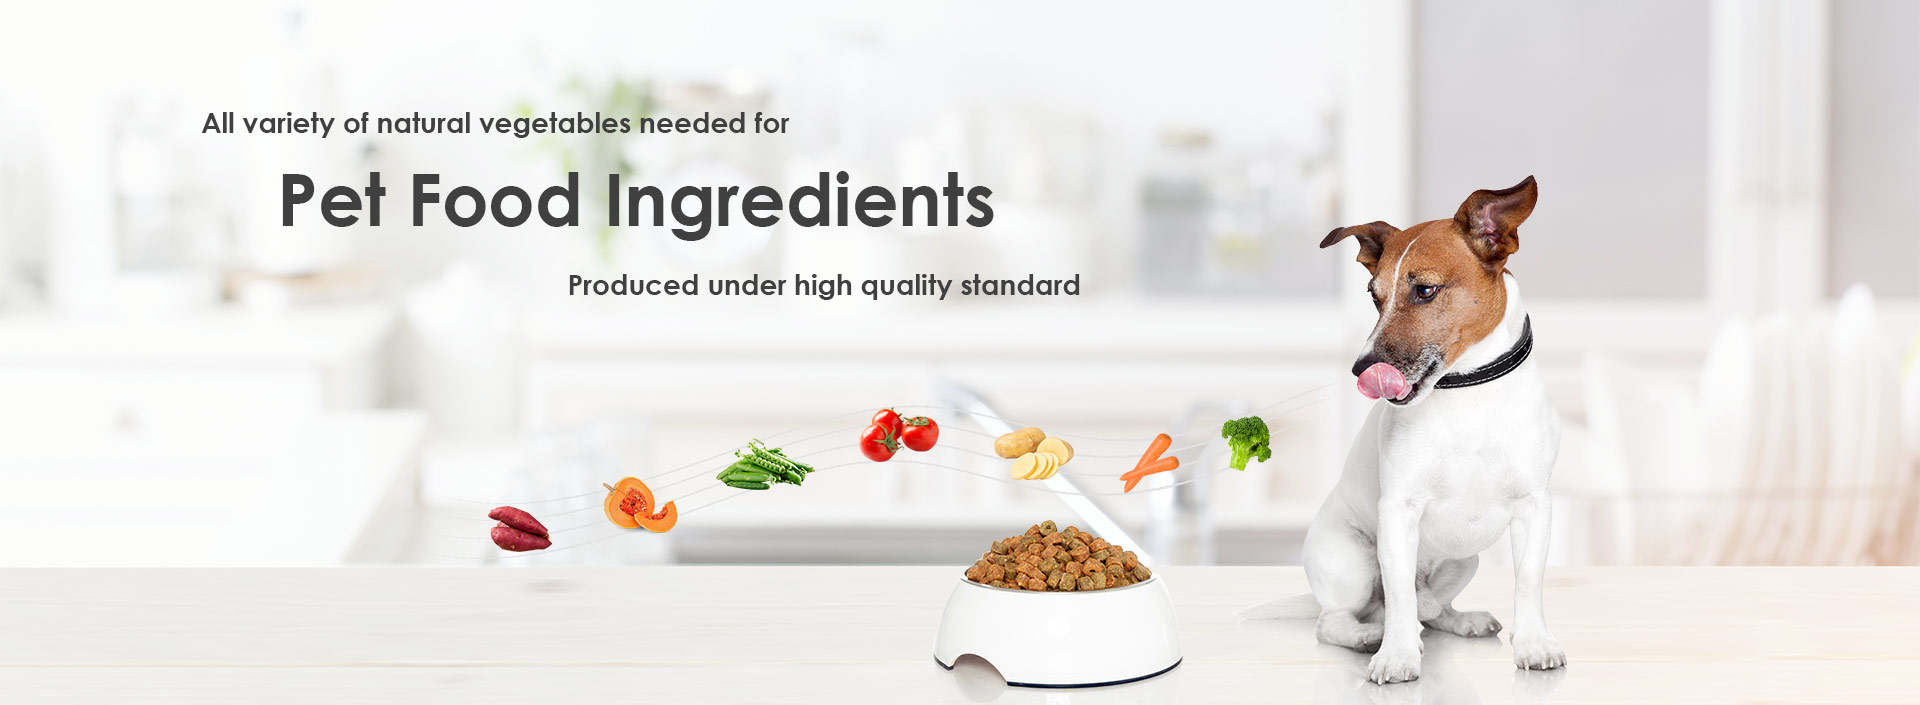 All variety of natural vegetables needed for Pet food ingredients produced under high quality standard